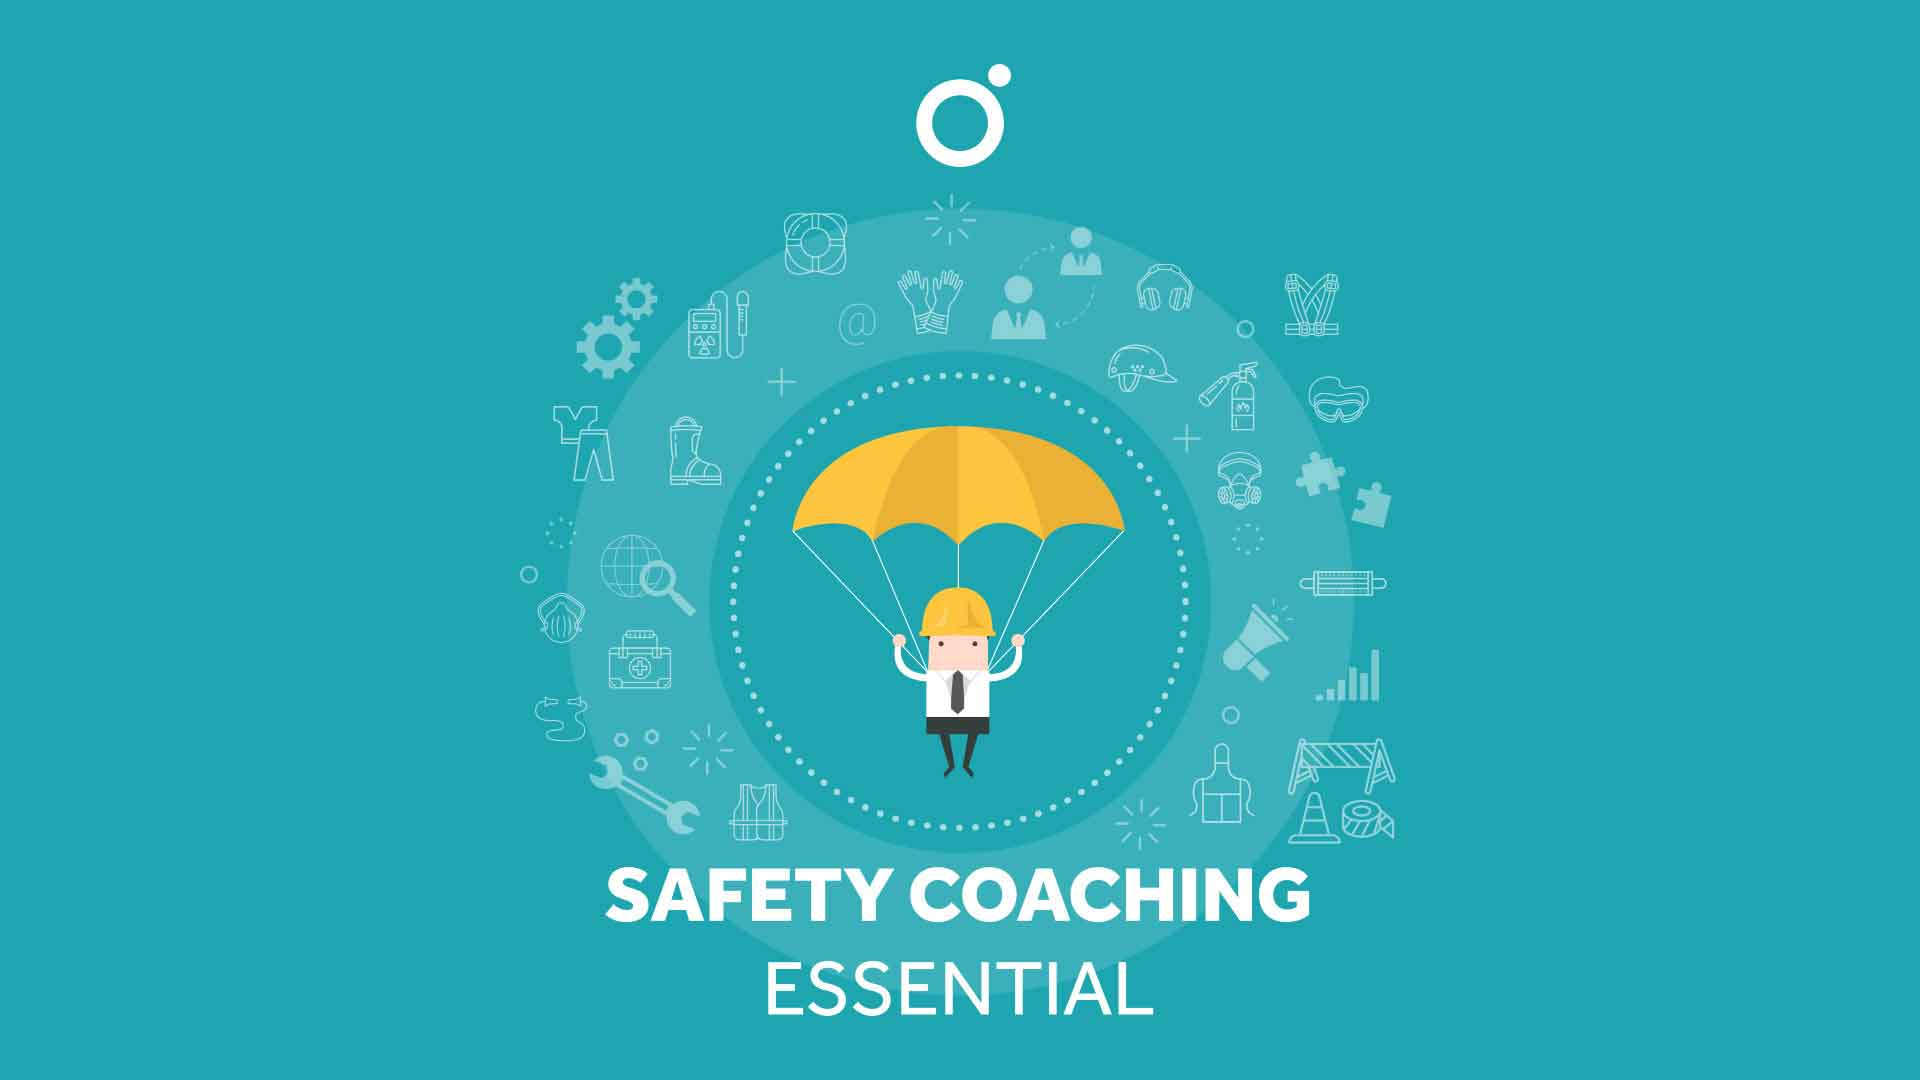 Safety Coaching - Video lezioni